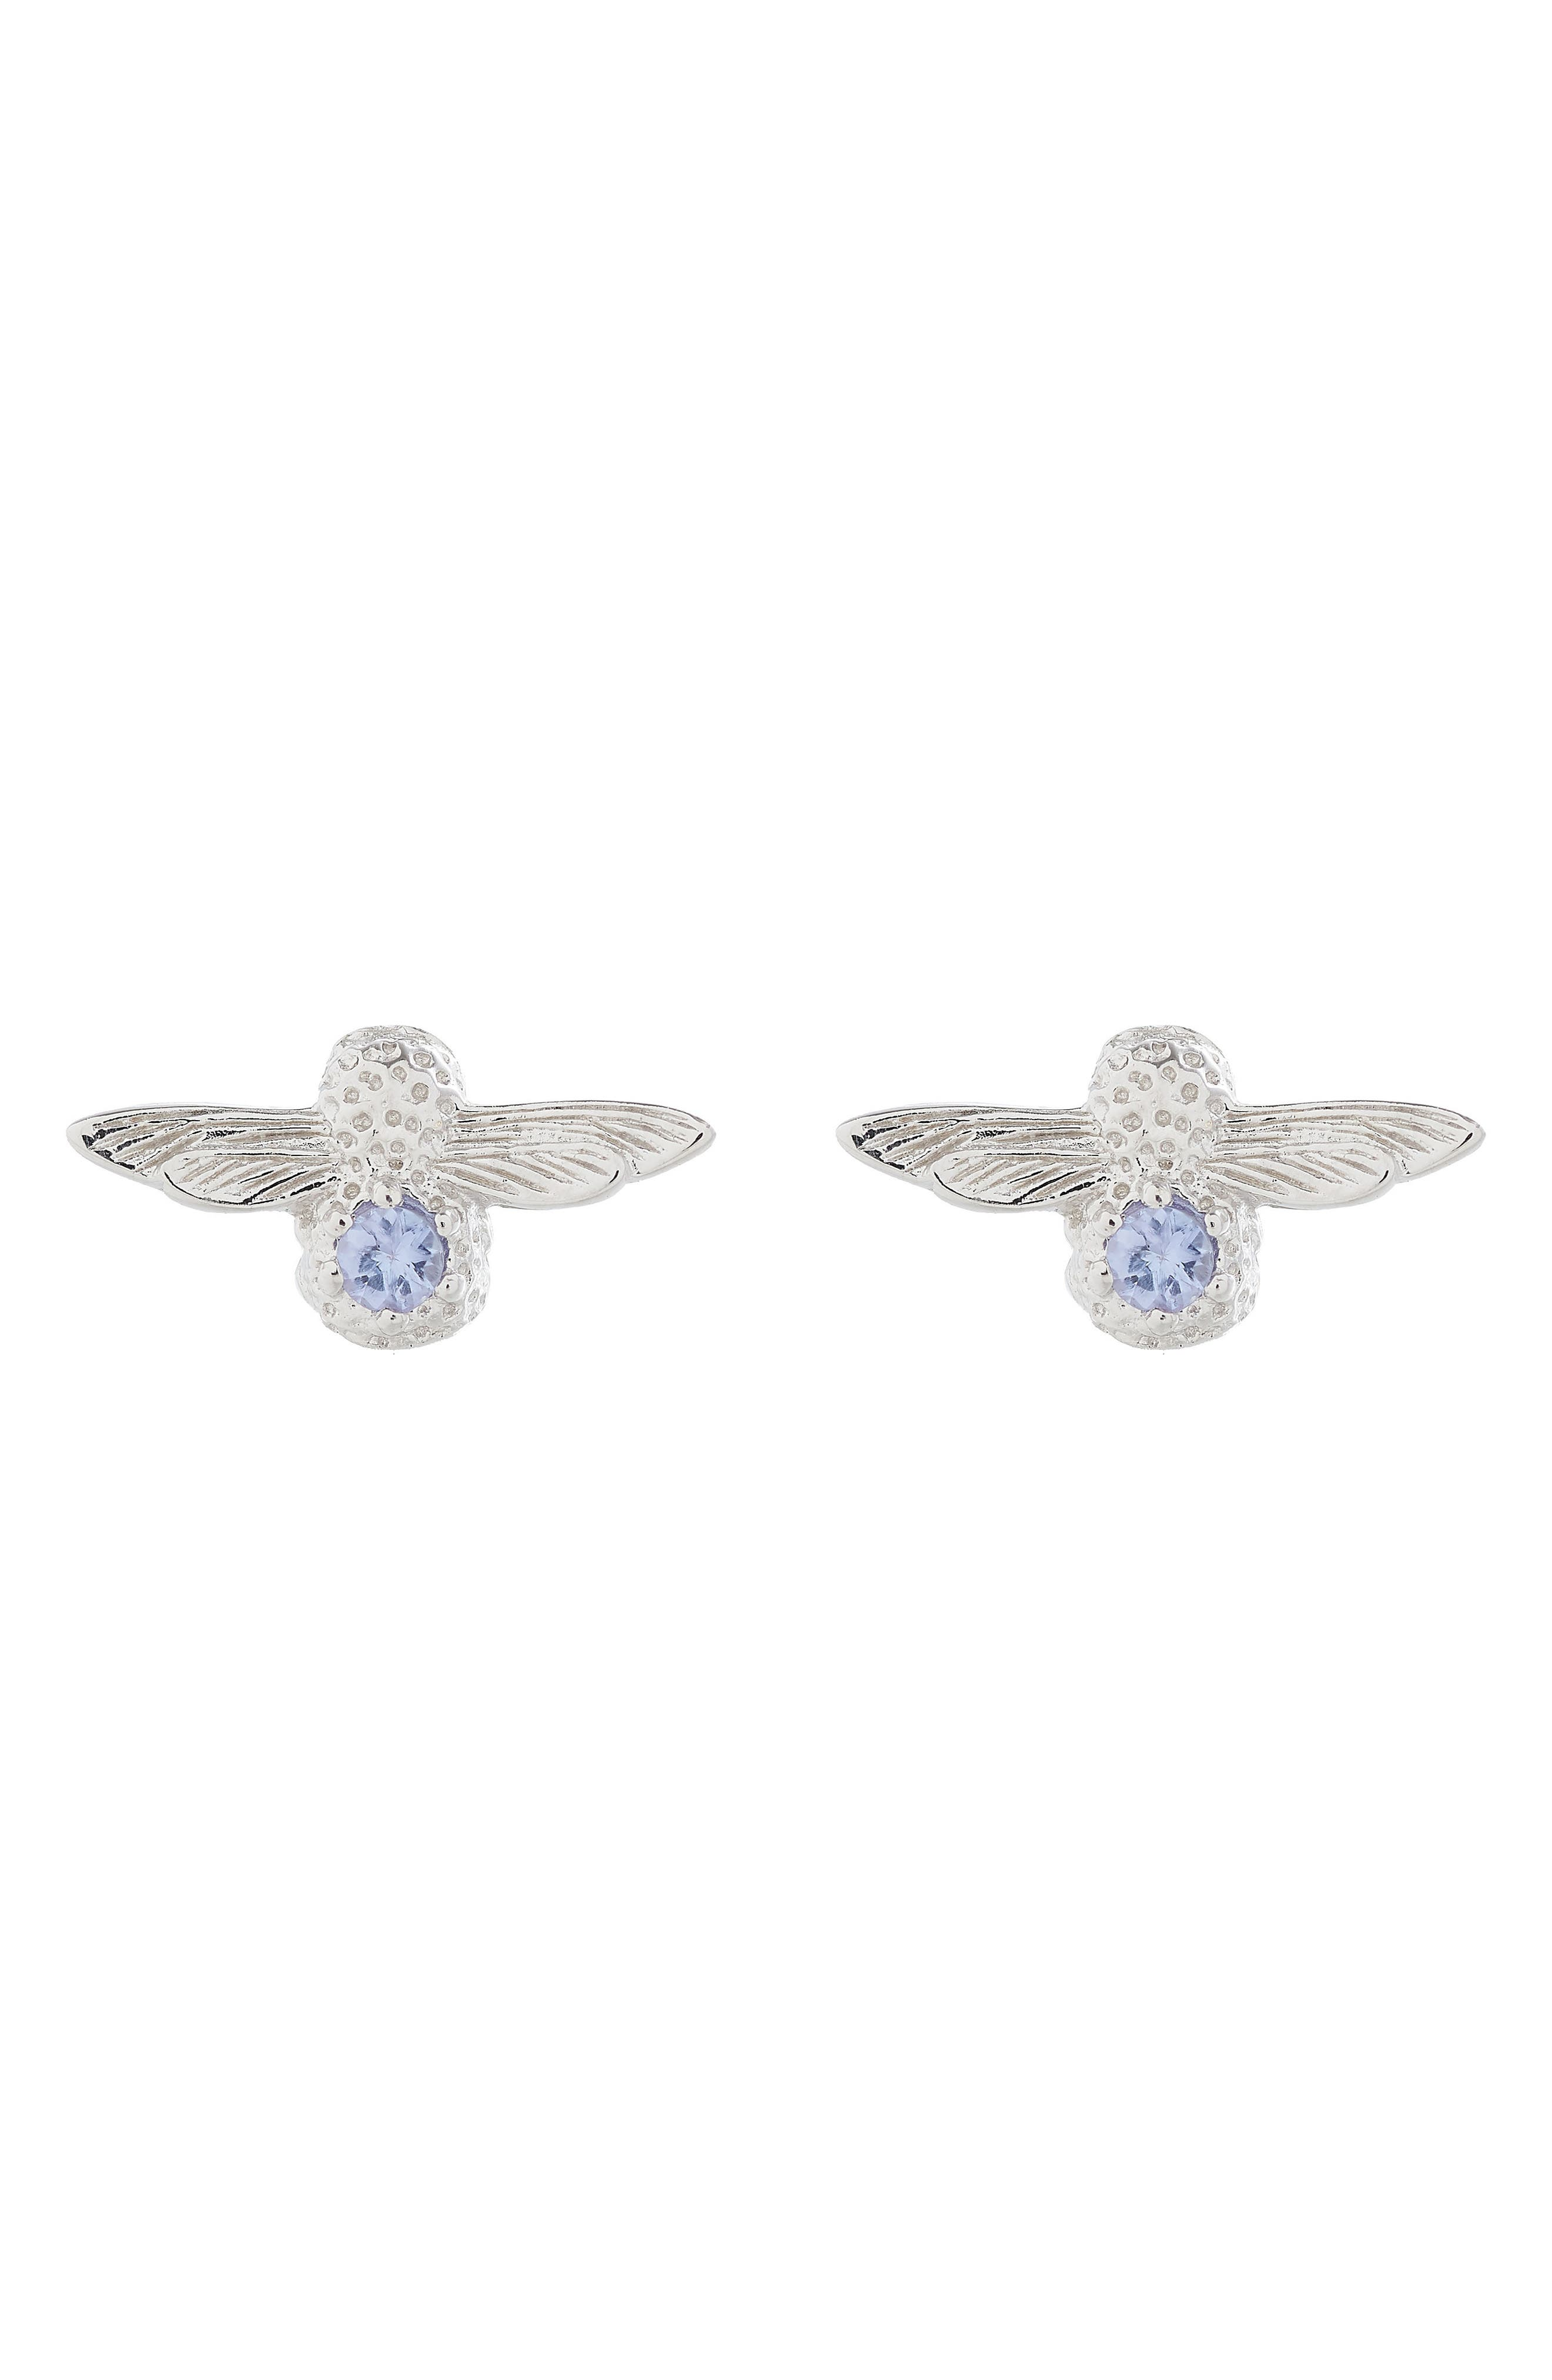 3D Bejeweled Bee Stud Earrings,                             Main thumbnail 1, color,                             TWO TONE-SILVER / TANZANITE